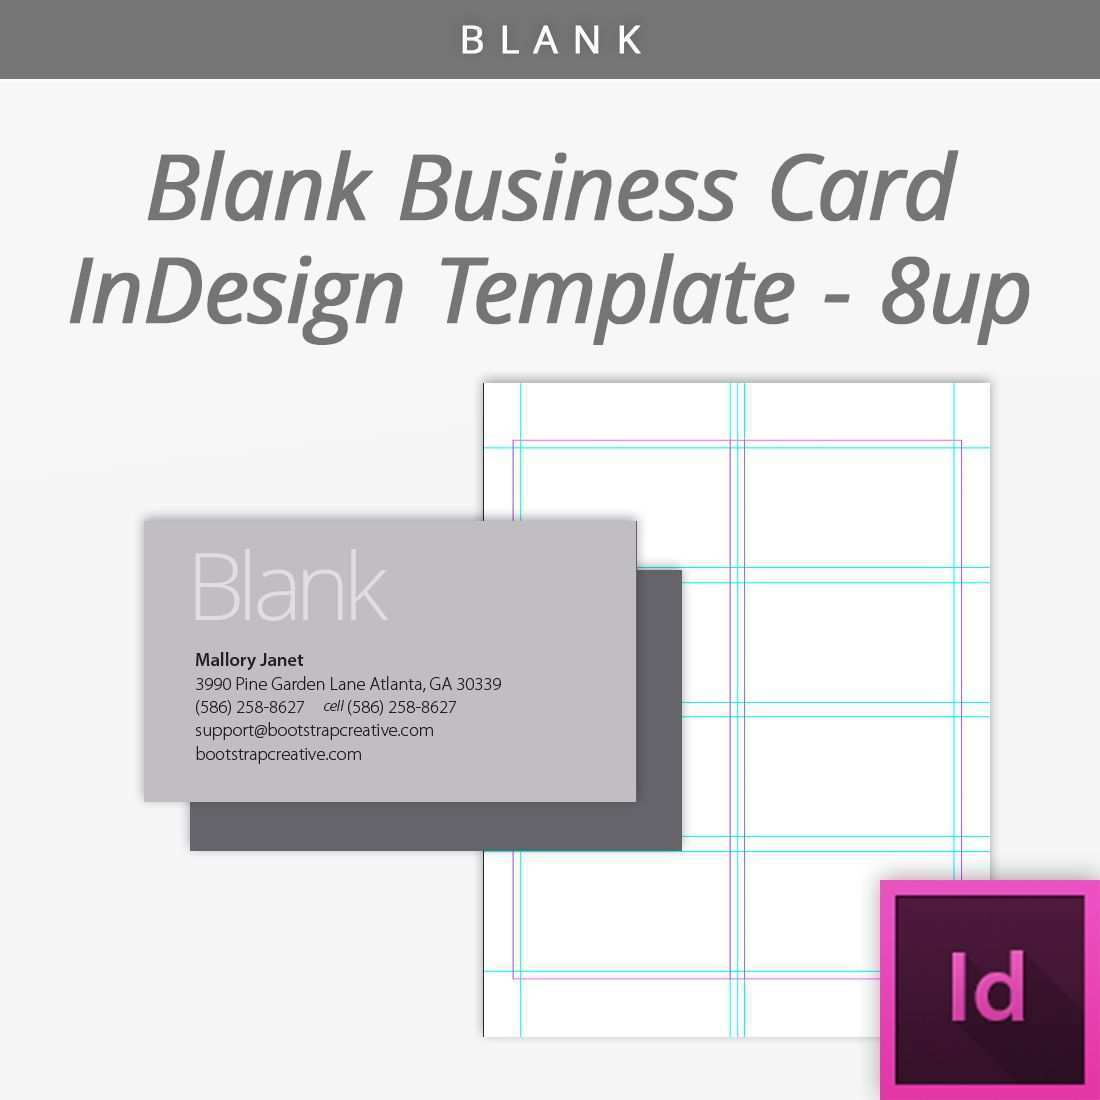 79 Visiting Blank Business Card Template Indesign Layouts by Blank Business Card Template Indesign